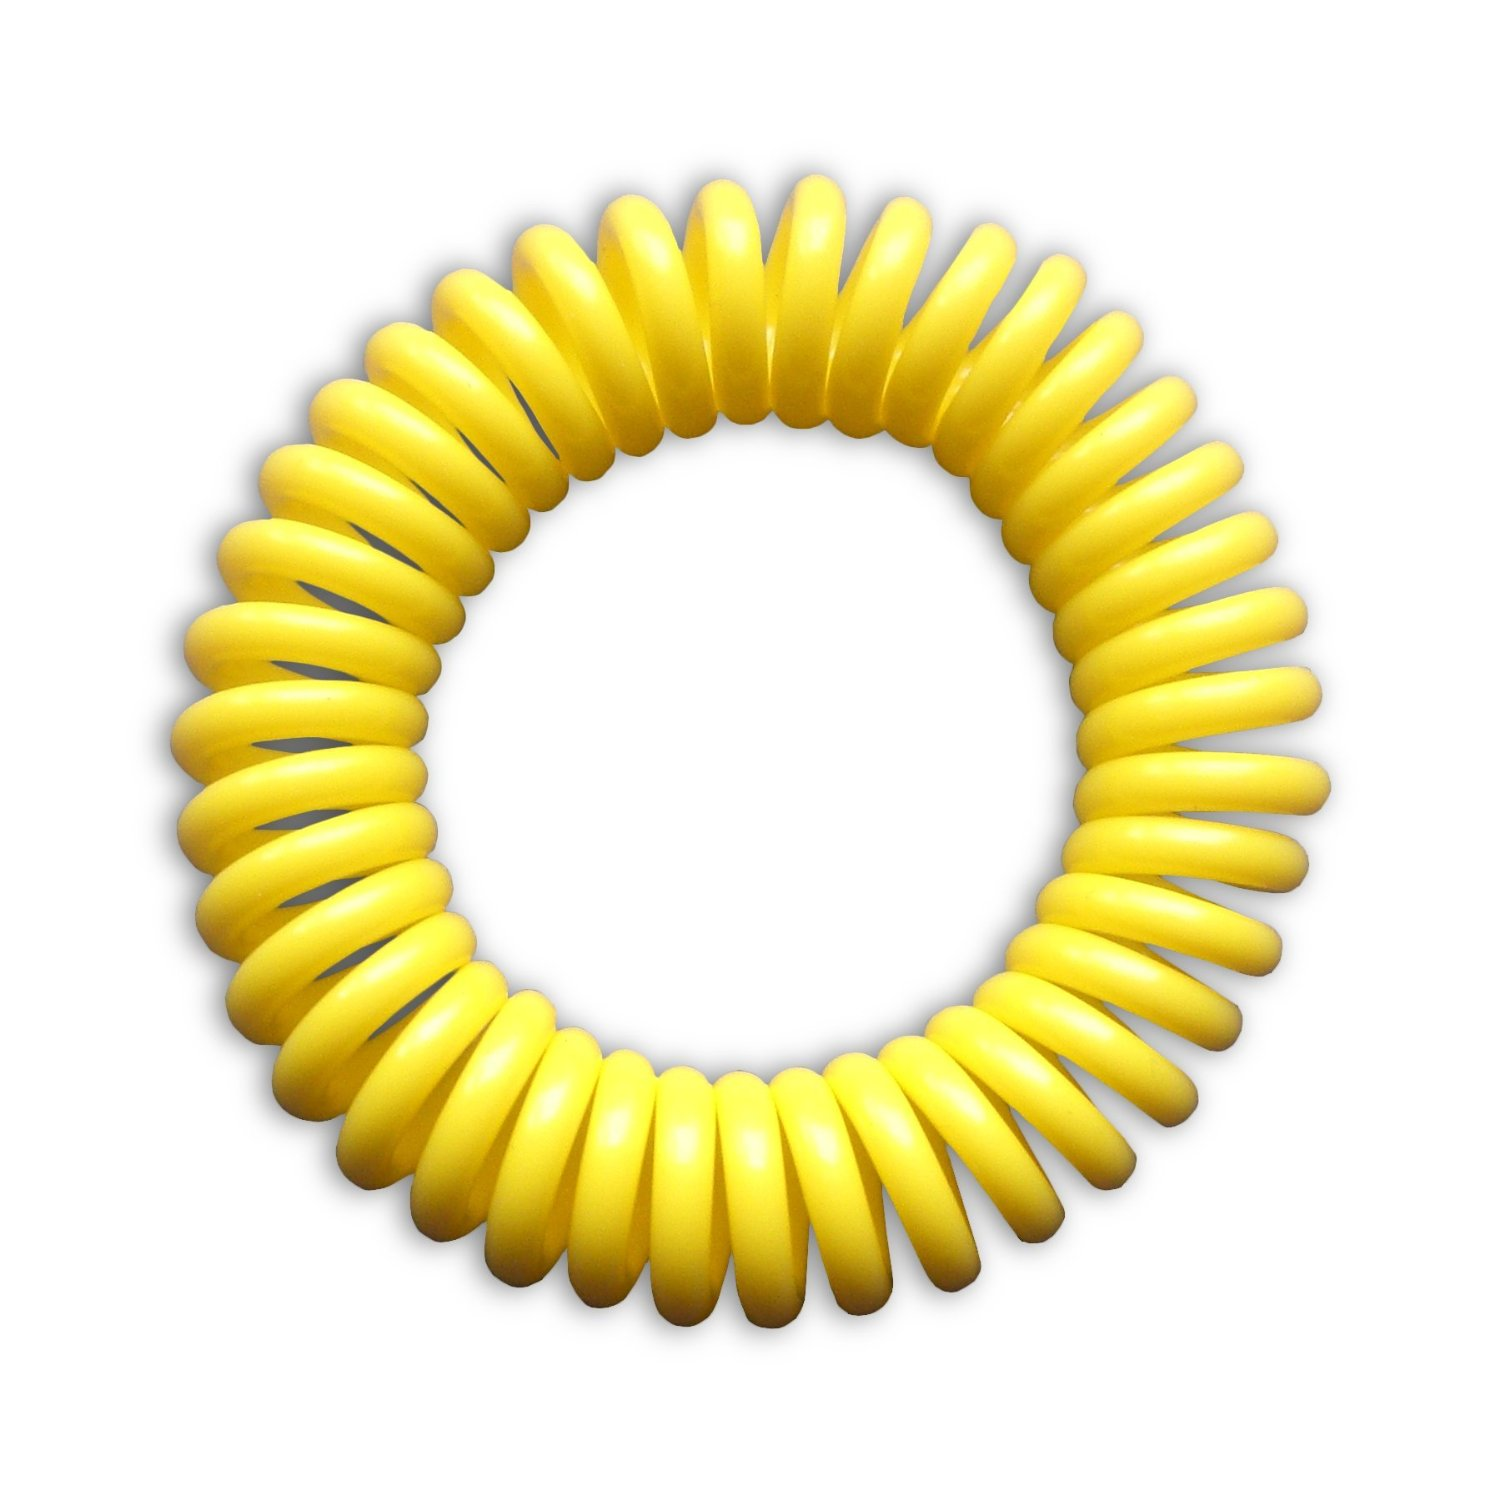 Mosquito Repellent Bracelets 10 Pack 7 80 0 78 Ea on Bug Insect Activities